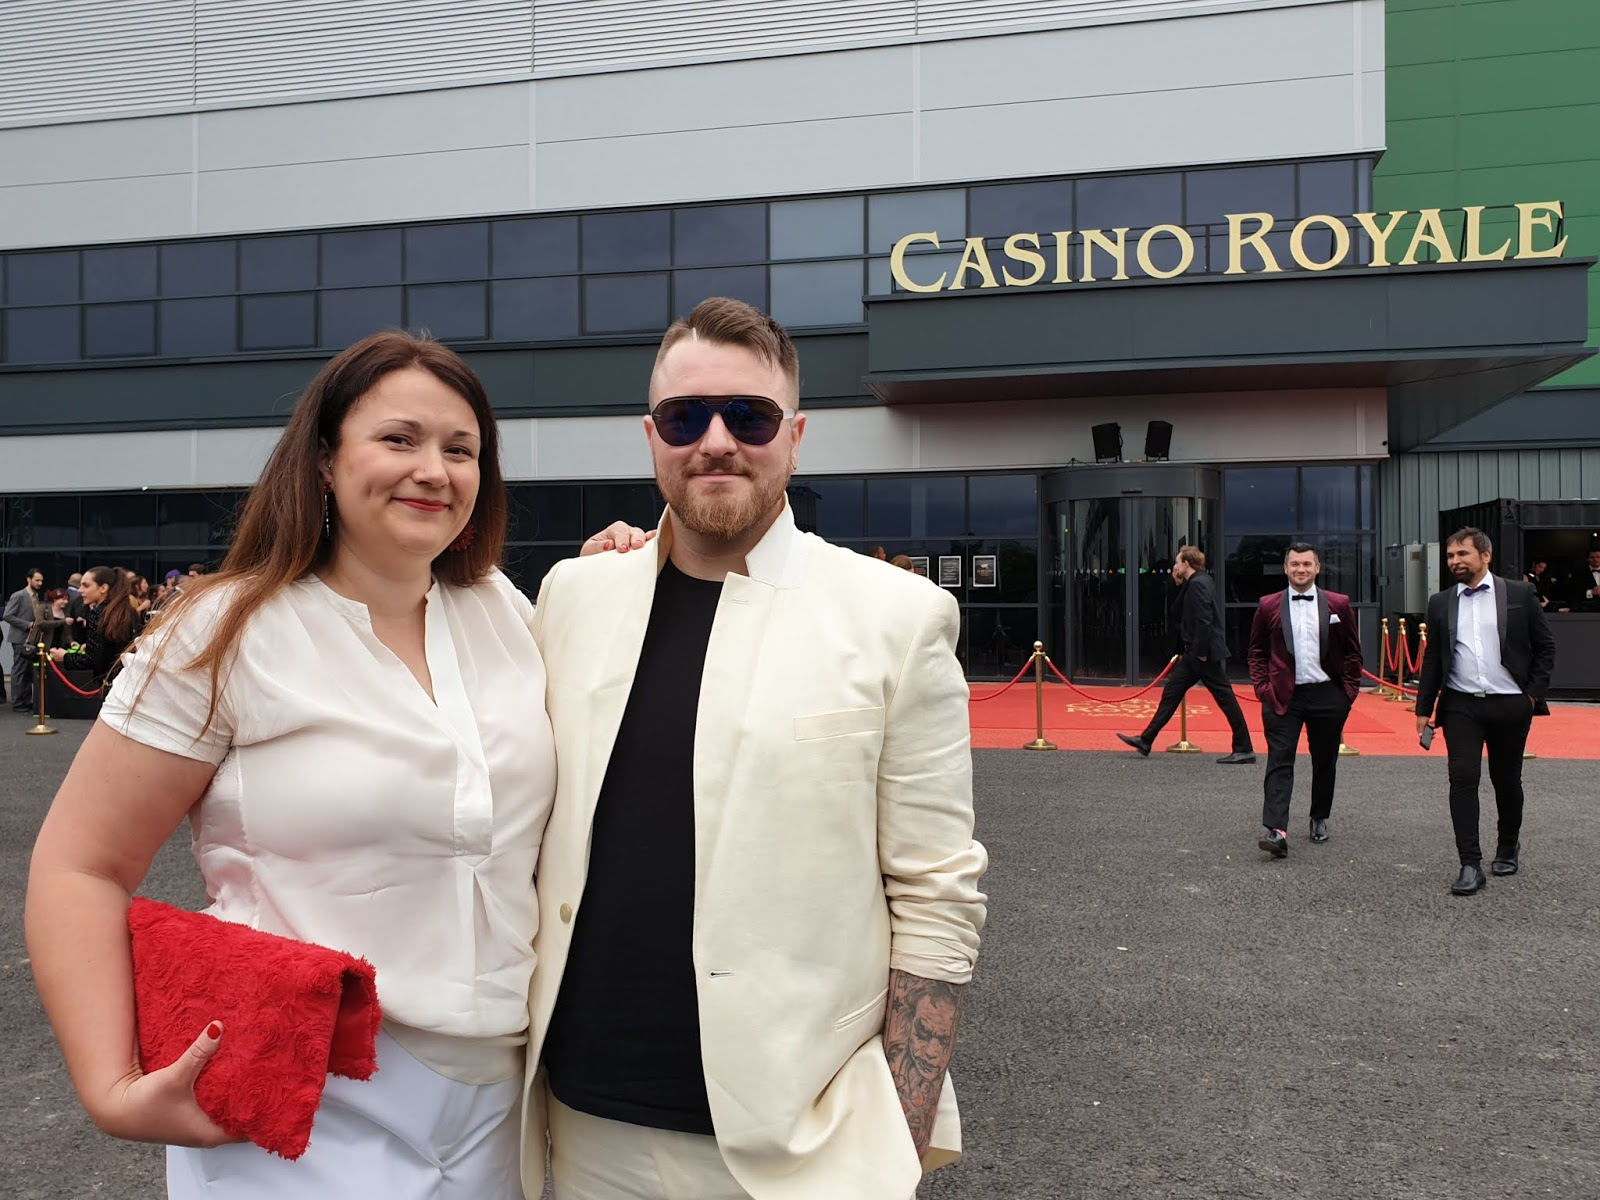 at casino royale